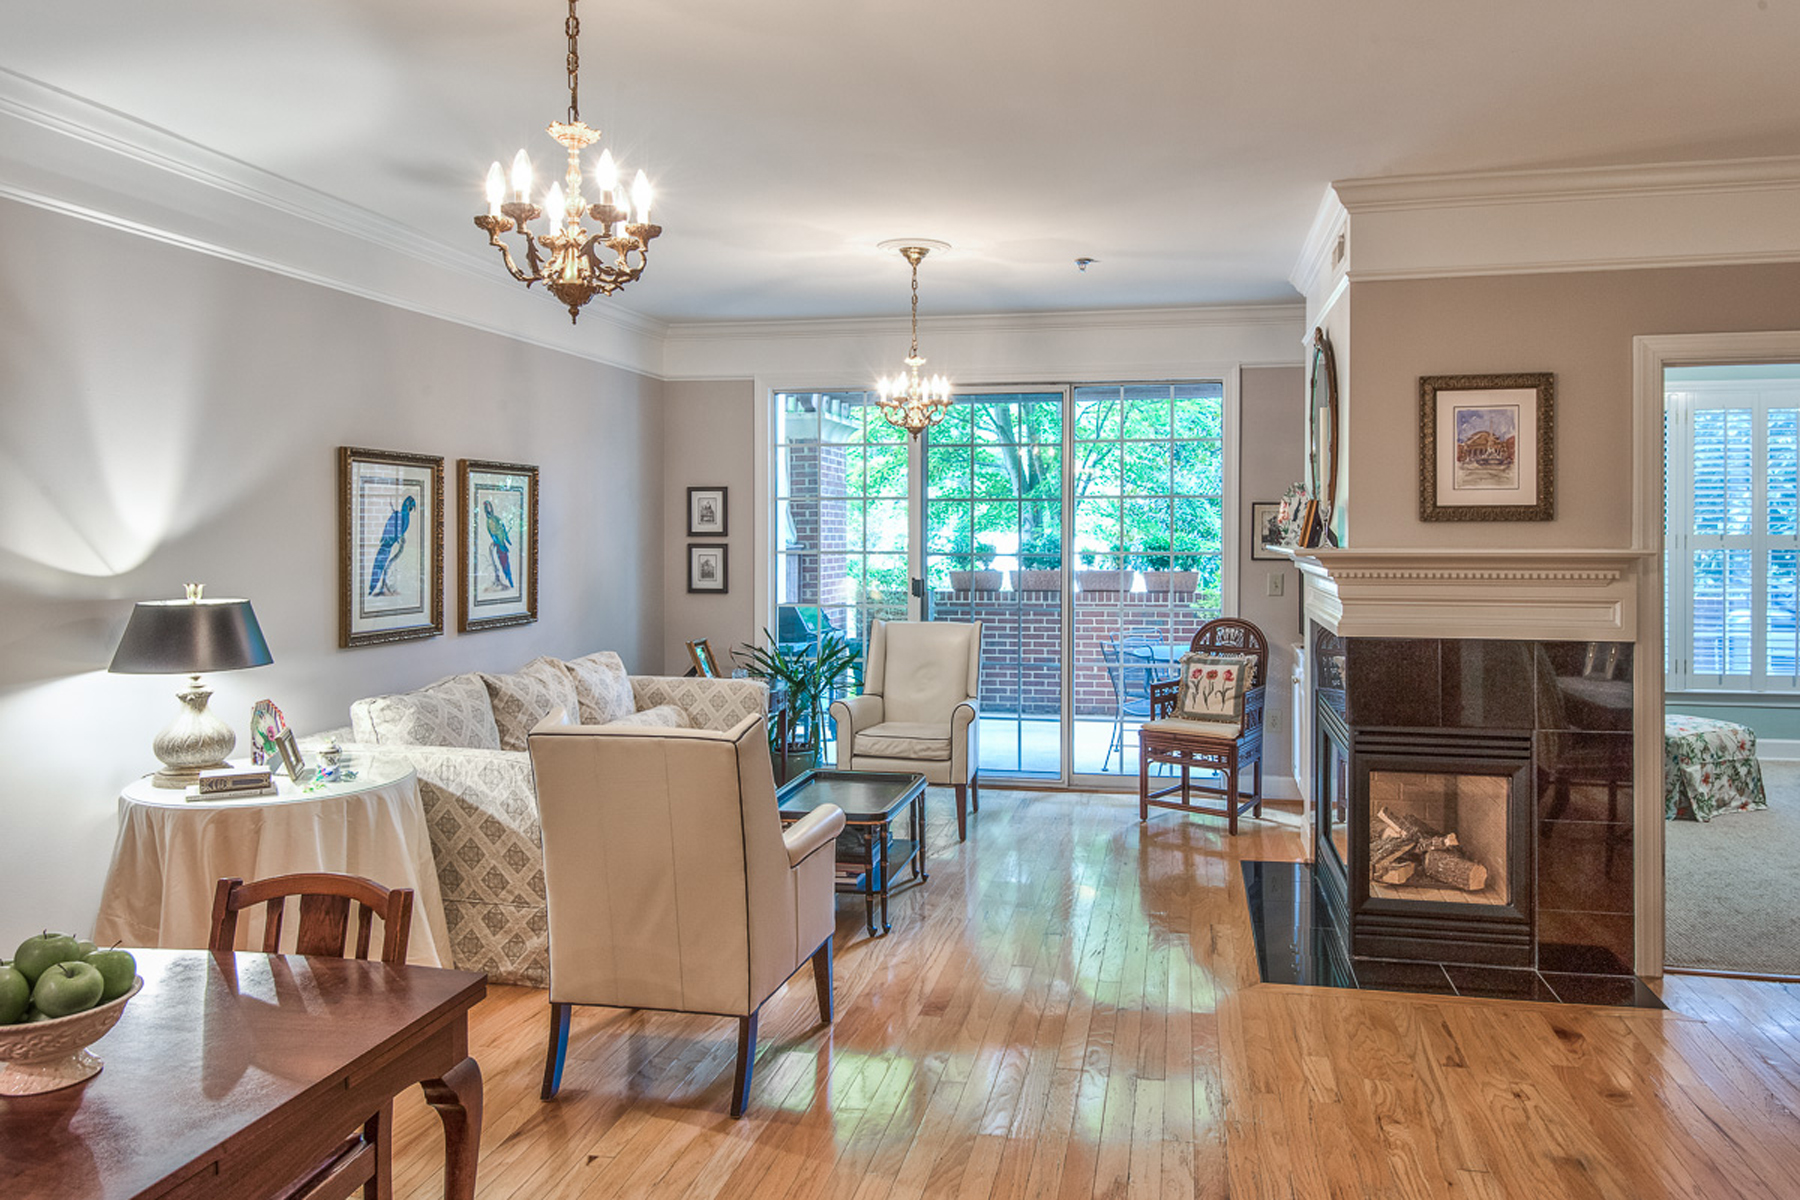 Condominium for Sale at Sophisticated Two Bedroom With Private Terrace 3101 Howell Mill Road #109 Buckhead, Atlanta, Georgia 30327 United States